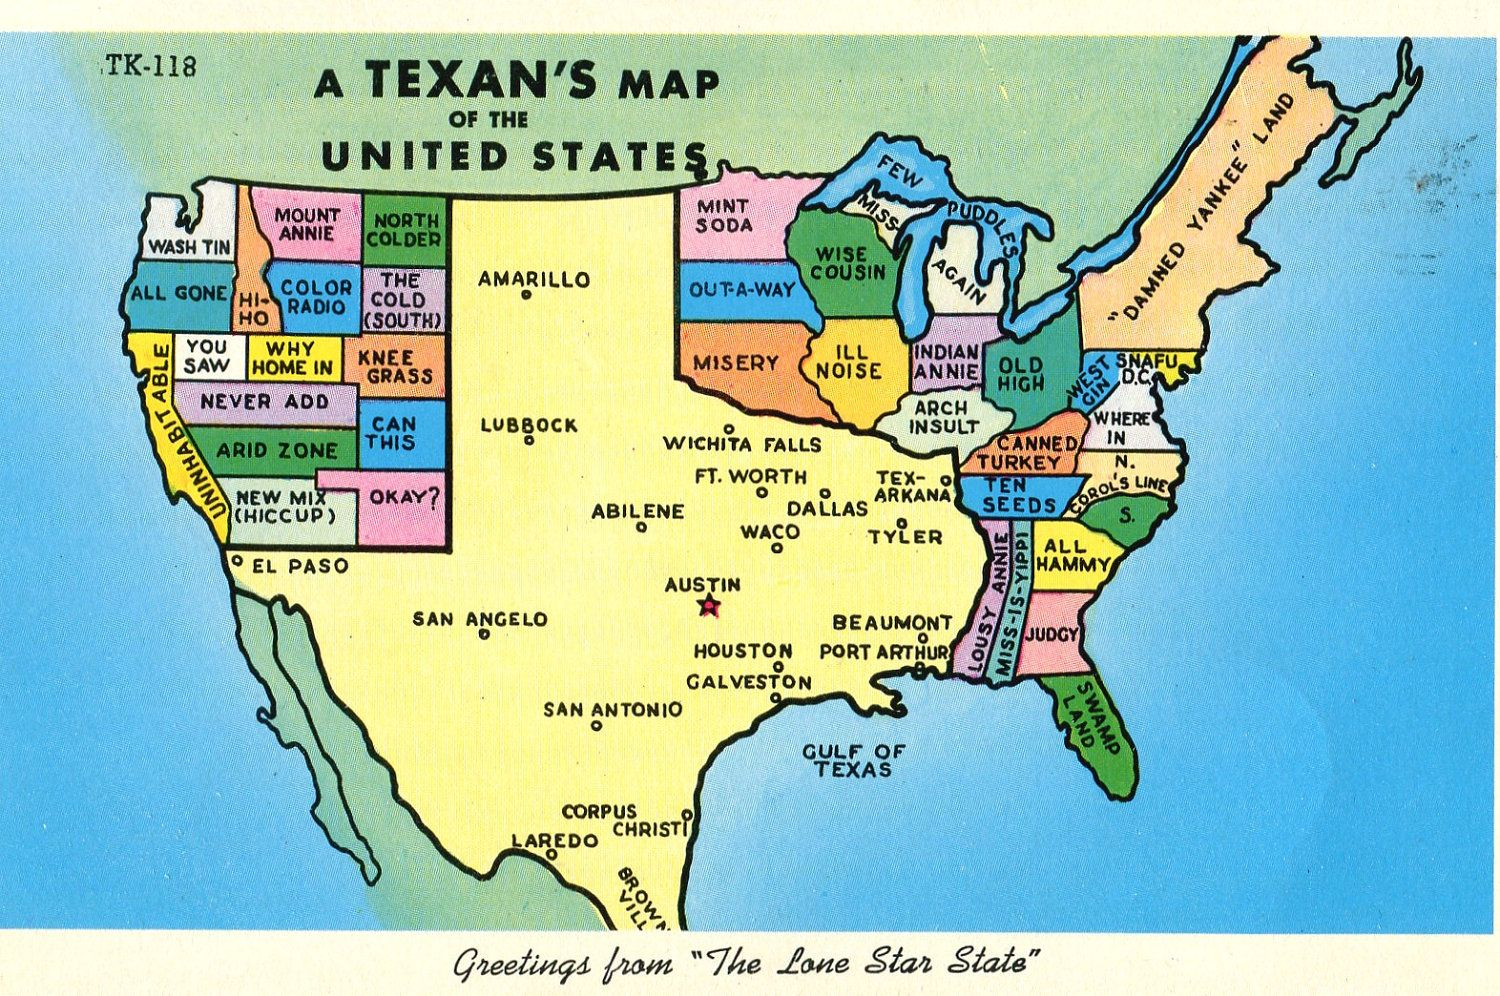 Map Of Texas Us.Texans Map Of The United States Postcard 1962 Funny Named States